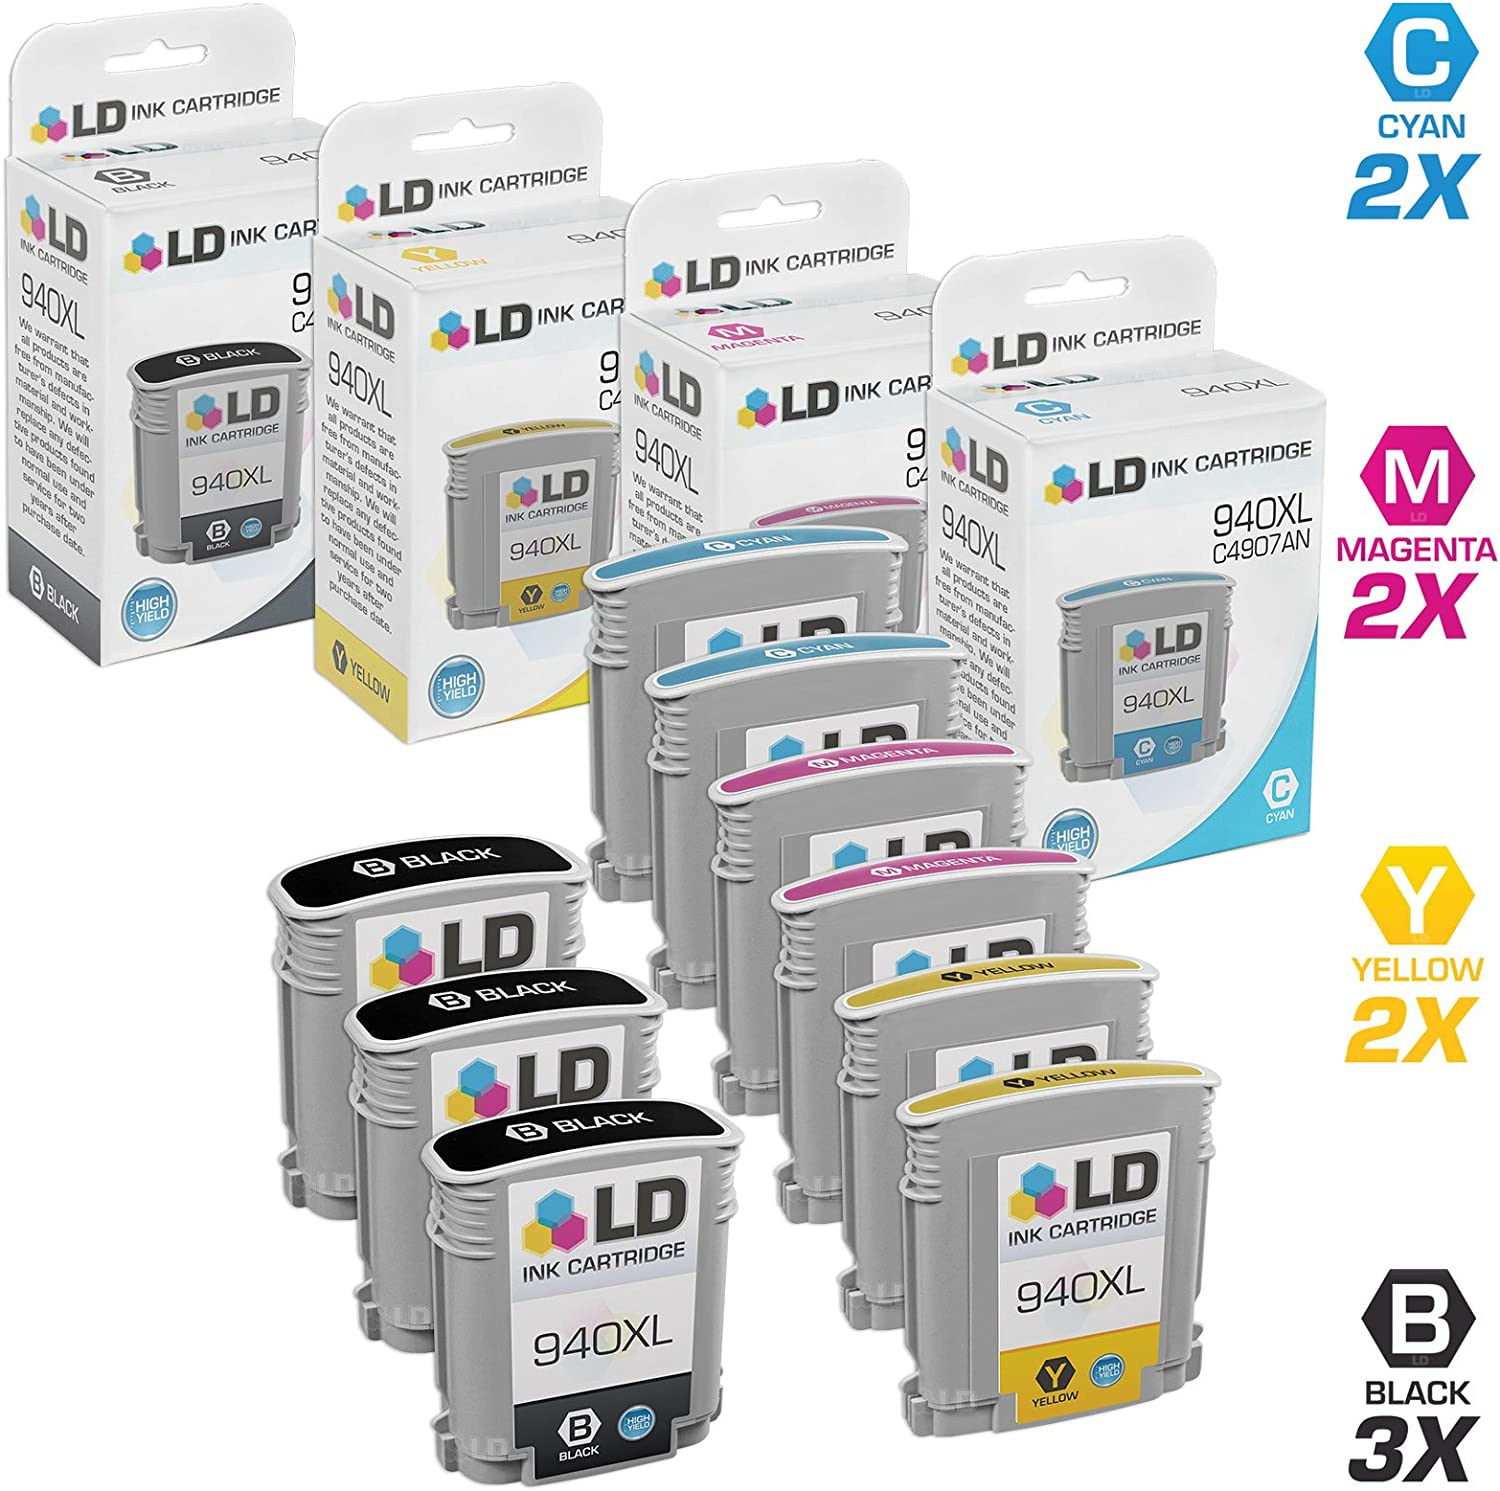 LD Remanufactured Ink Cartridge Replacement for HP 940XL High Yield (3 Black, 2 Cyan, 2 Magenta, 2 Yellow, 9-Pack)